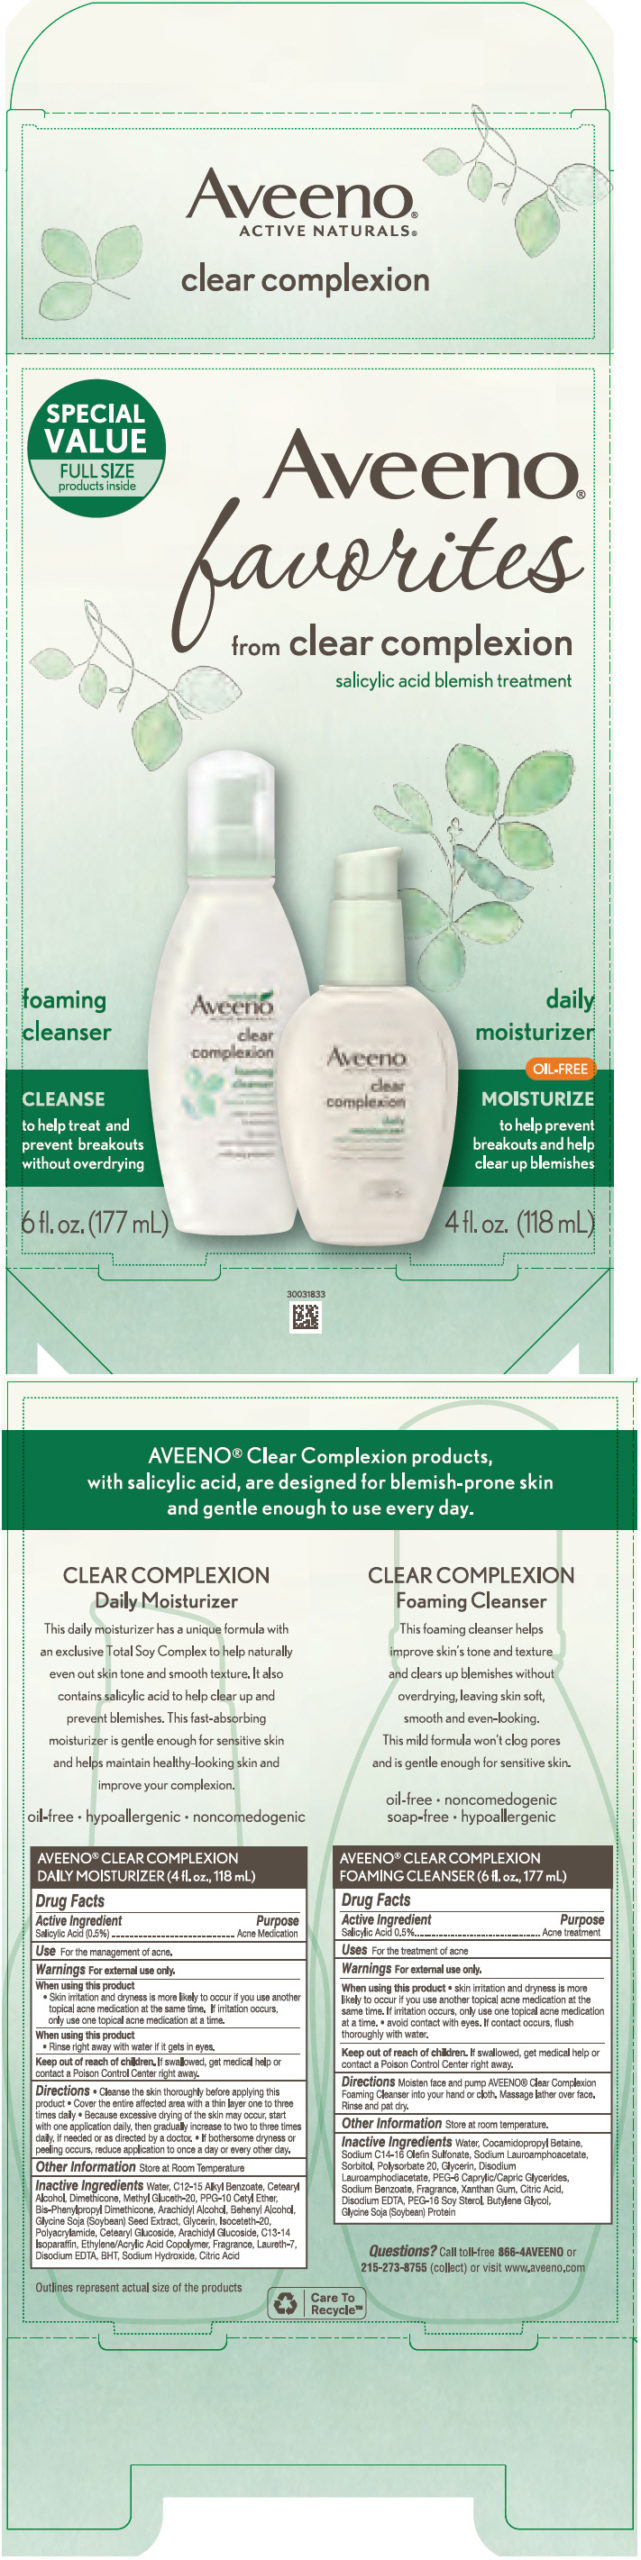 Salicylic acid (Aveeno favorites from clear complexion)